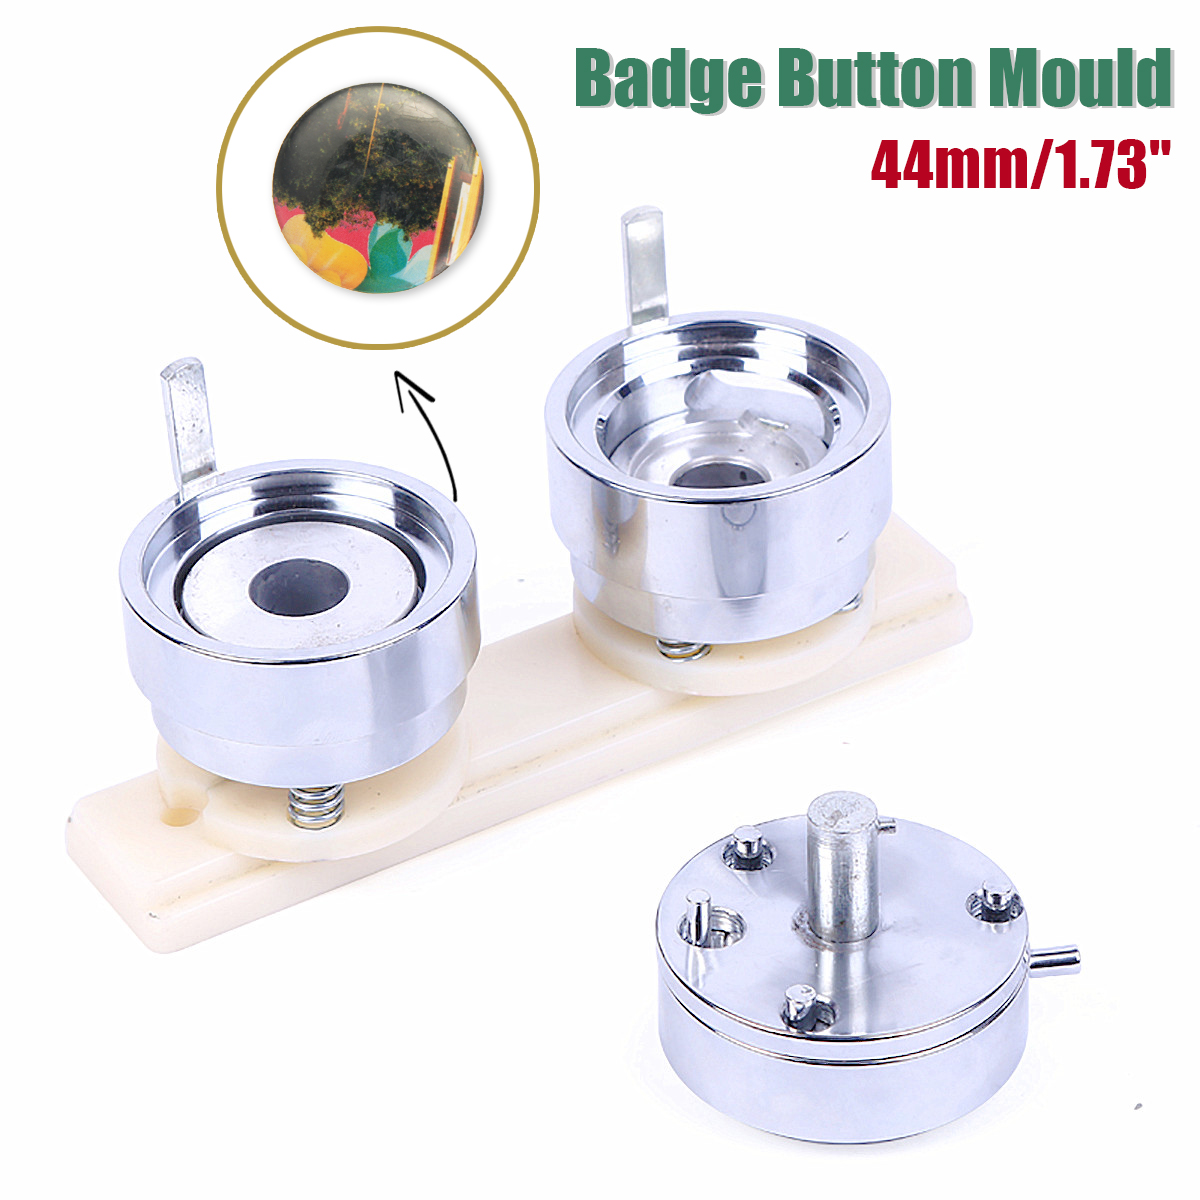 Round 44mm Interchangeable Die Mould for New Badge Machine Button Maker both Fit N3 N4 Button